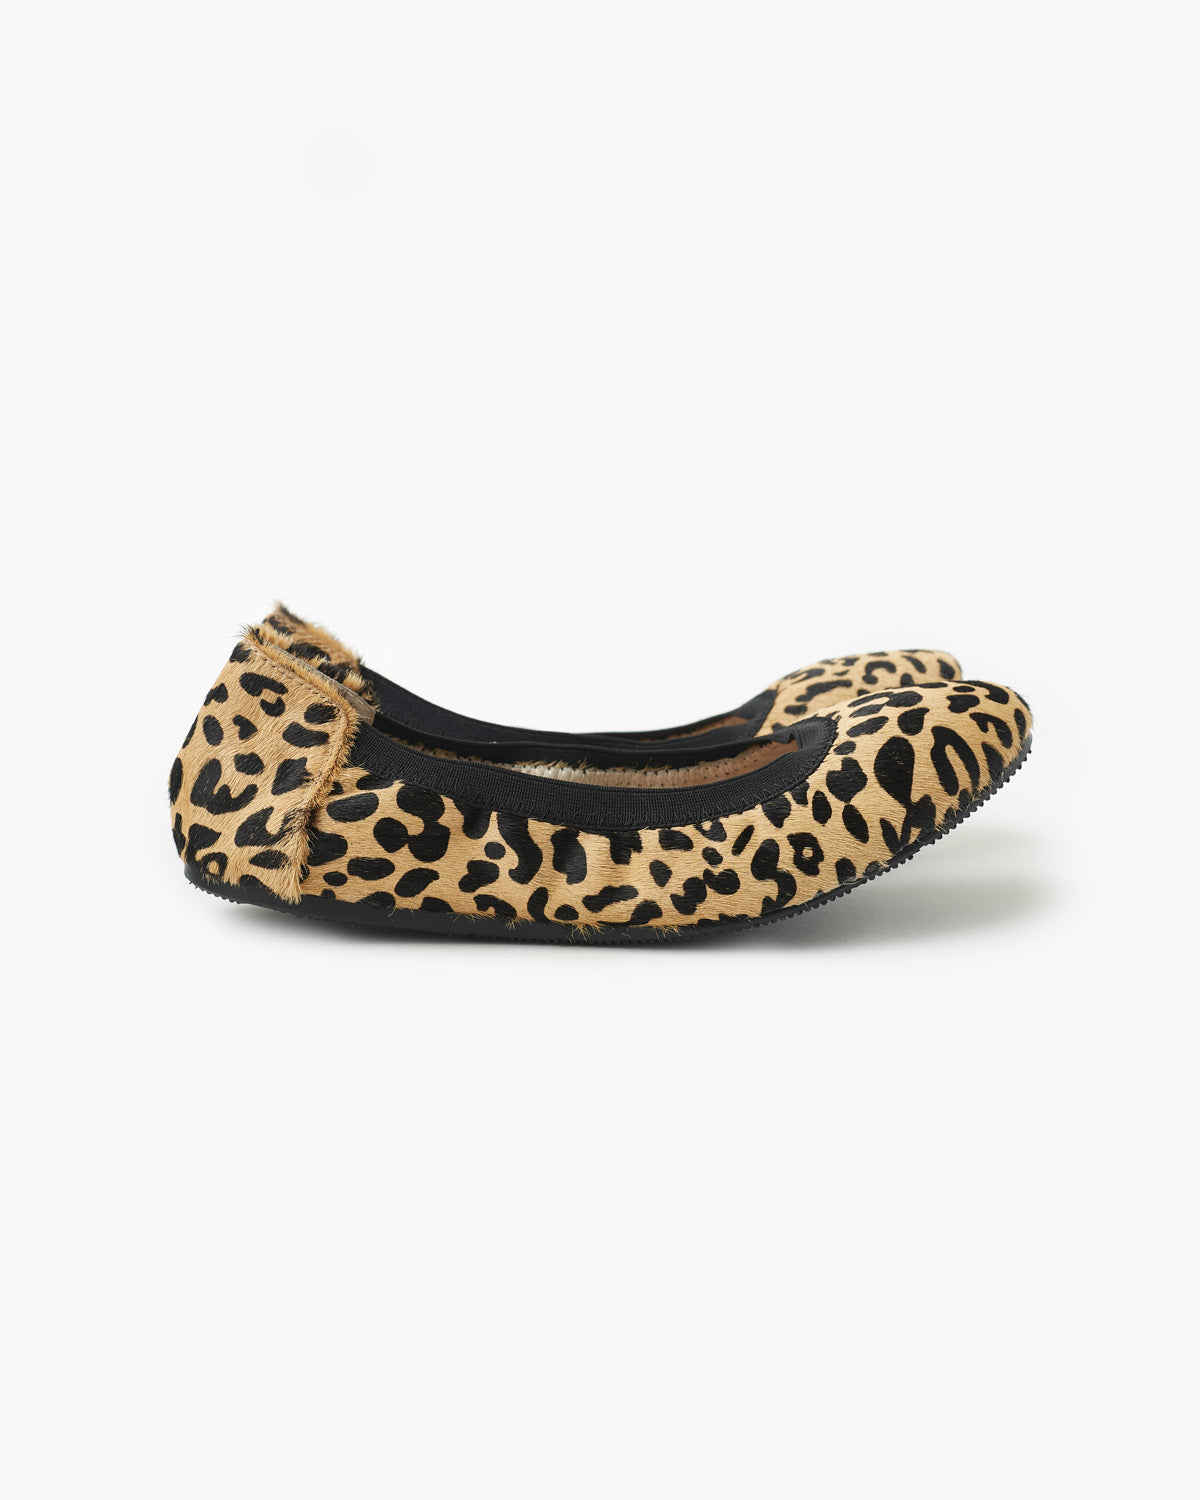 Ava Leather Ballet Flat - Sand Leopard Pony